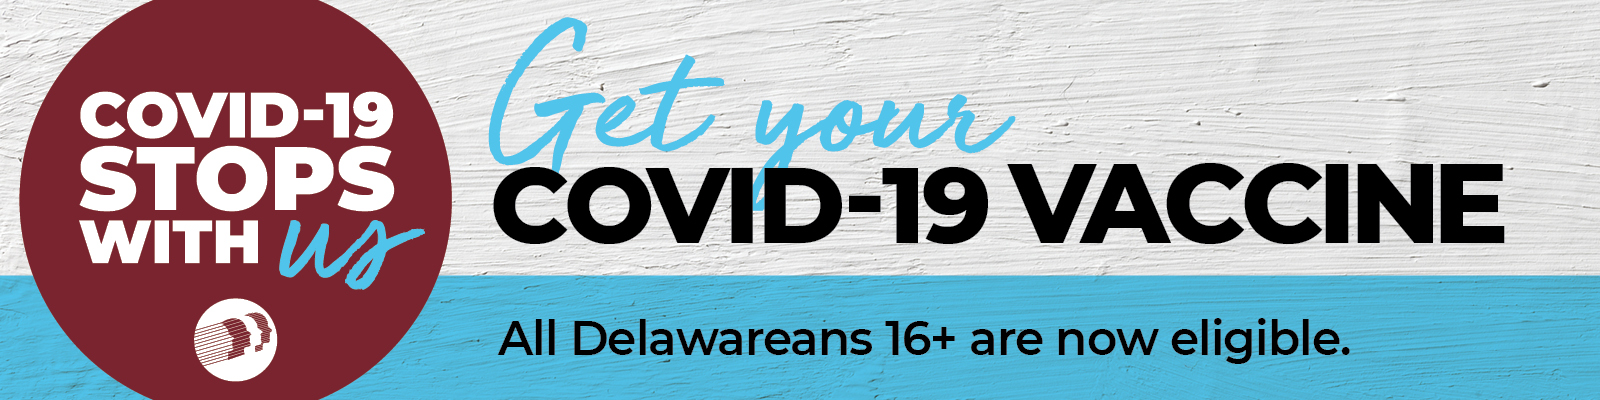 Get your COVID-19 Vaccine. All Delawareans 16+ are now eligible.